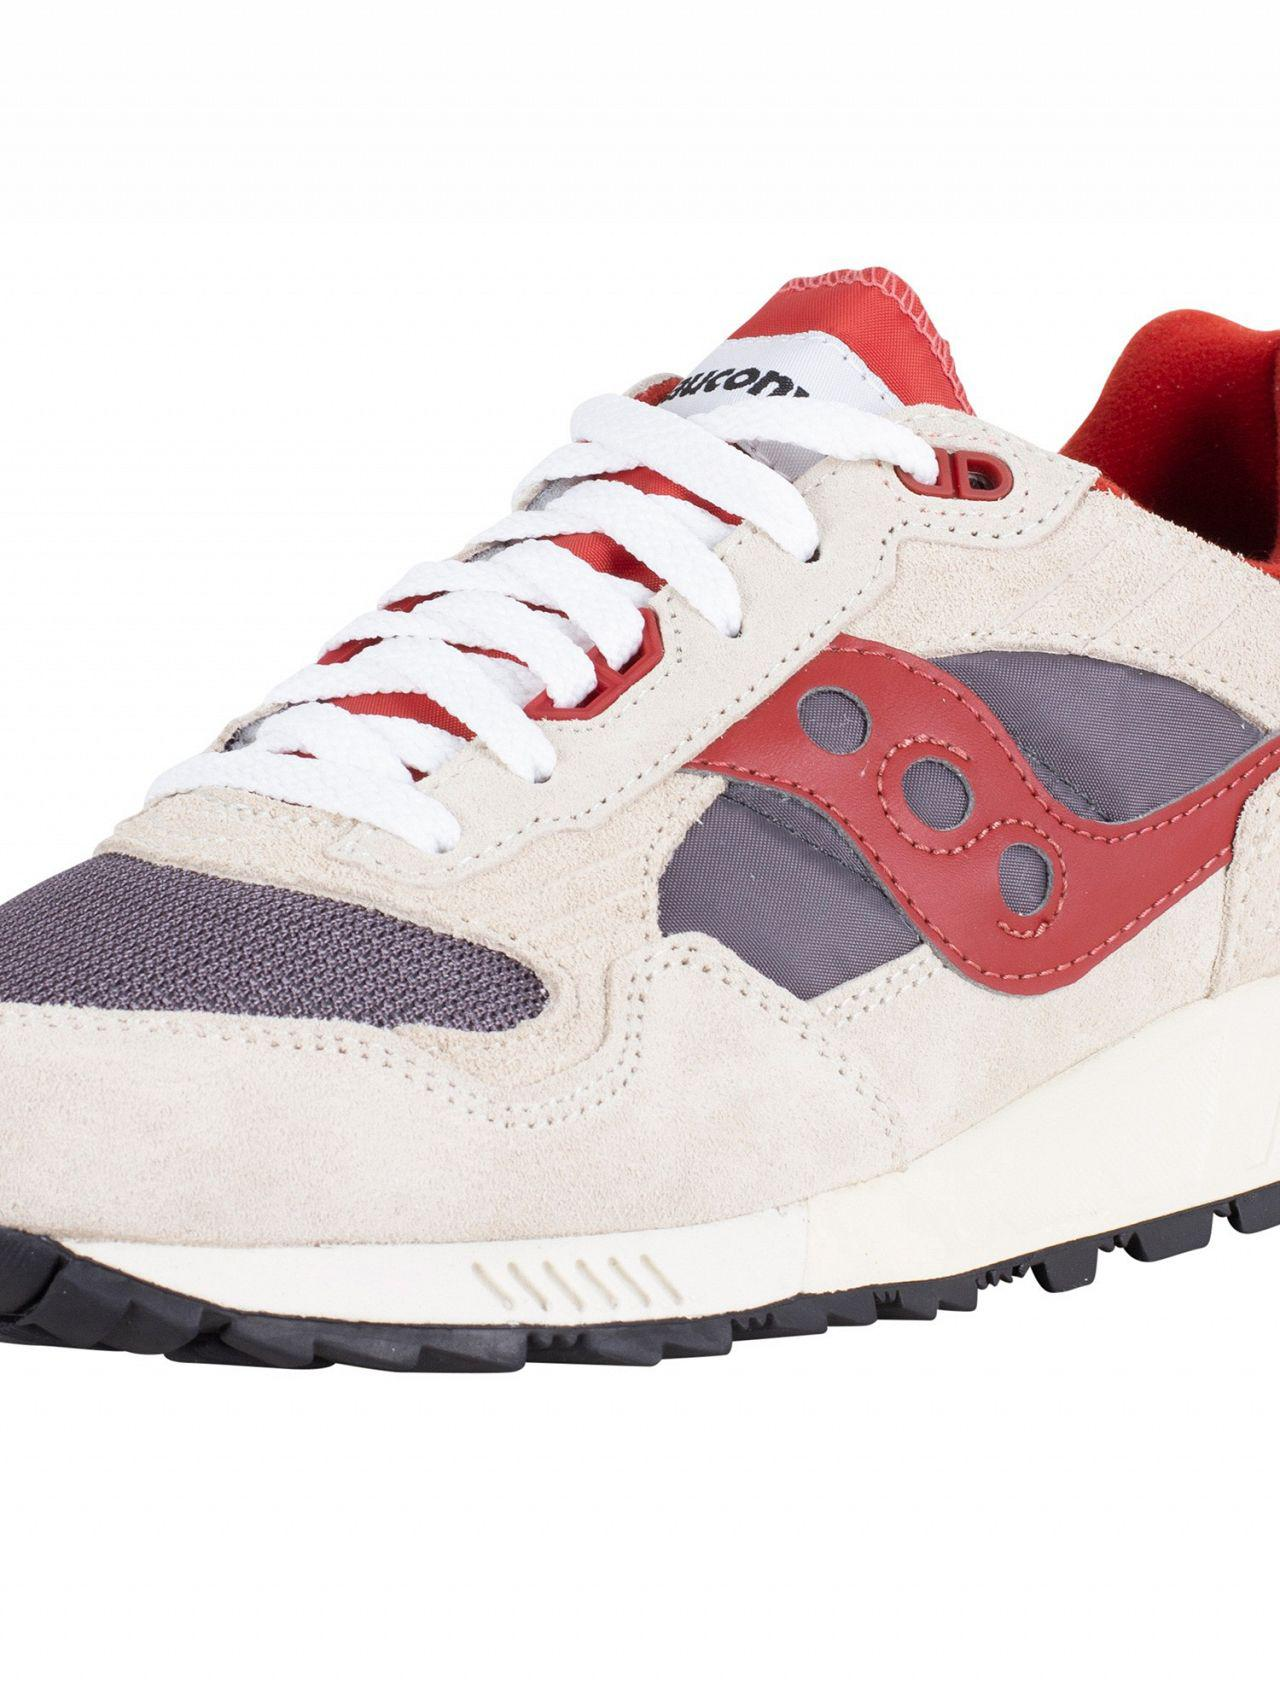 Shadow 5000 Vintage Trainers for Men - Lyst